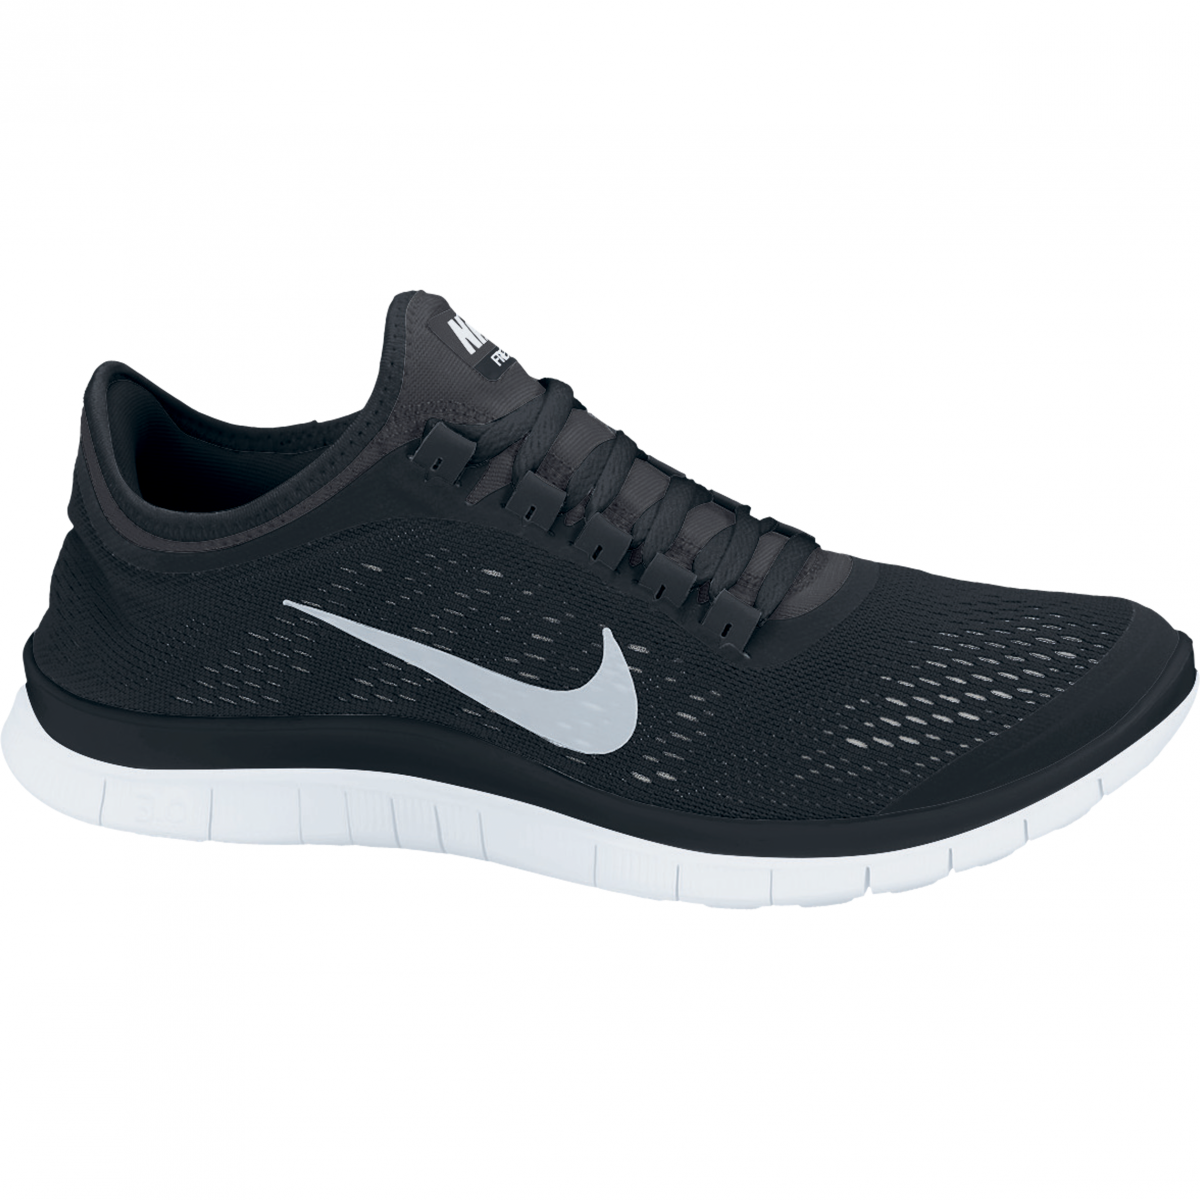 wmns nike free 3 0 v5 damen laufschuh schwarz. Black Bedroom Furniture Sets. Home Design Ideas